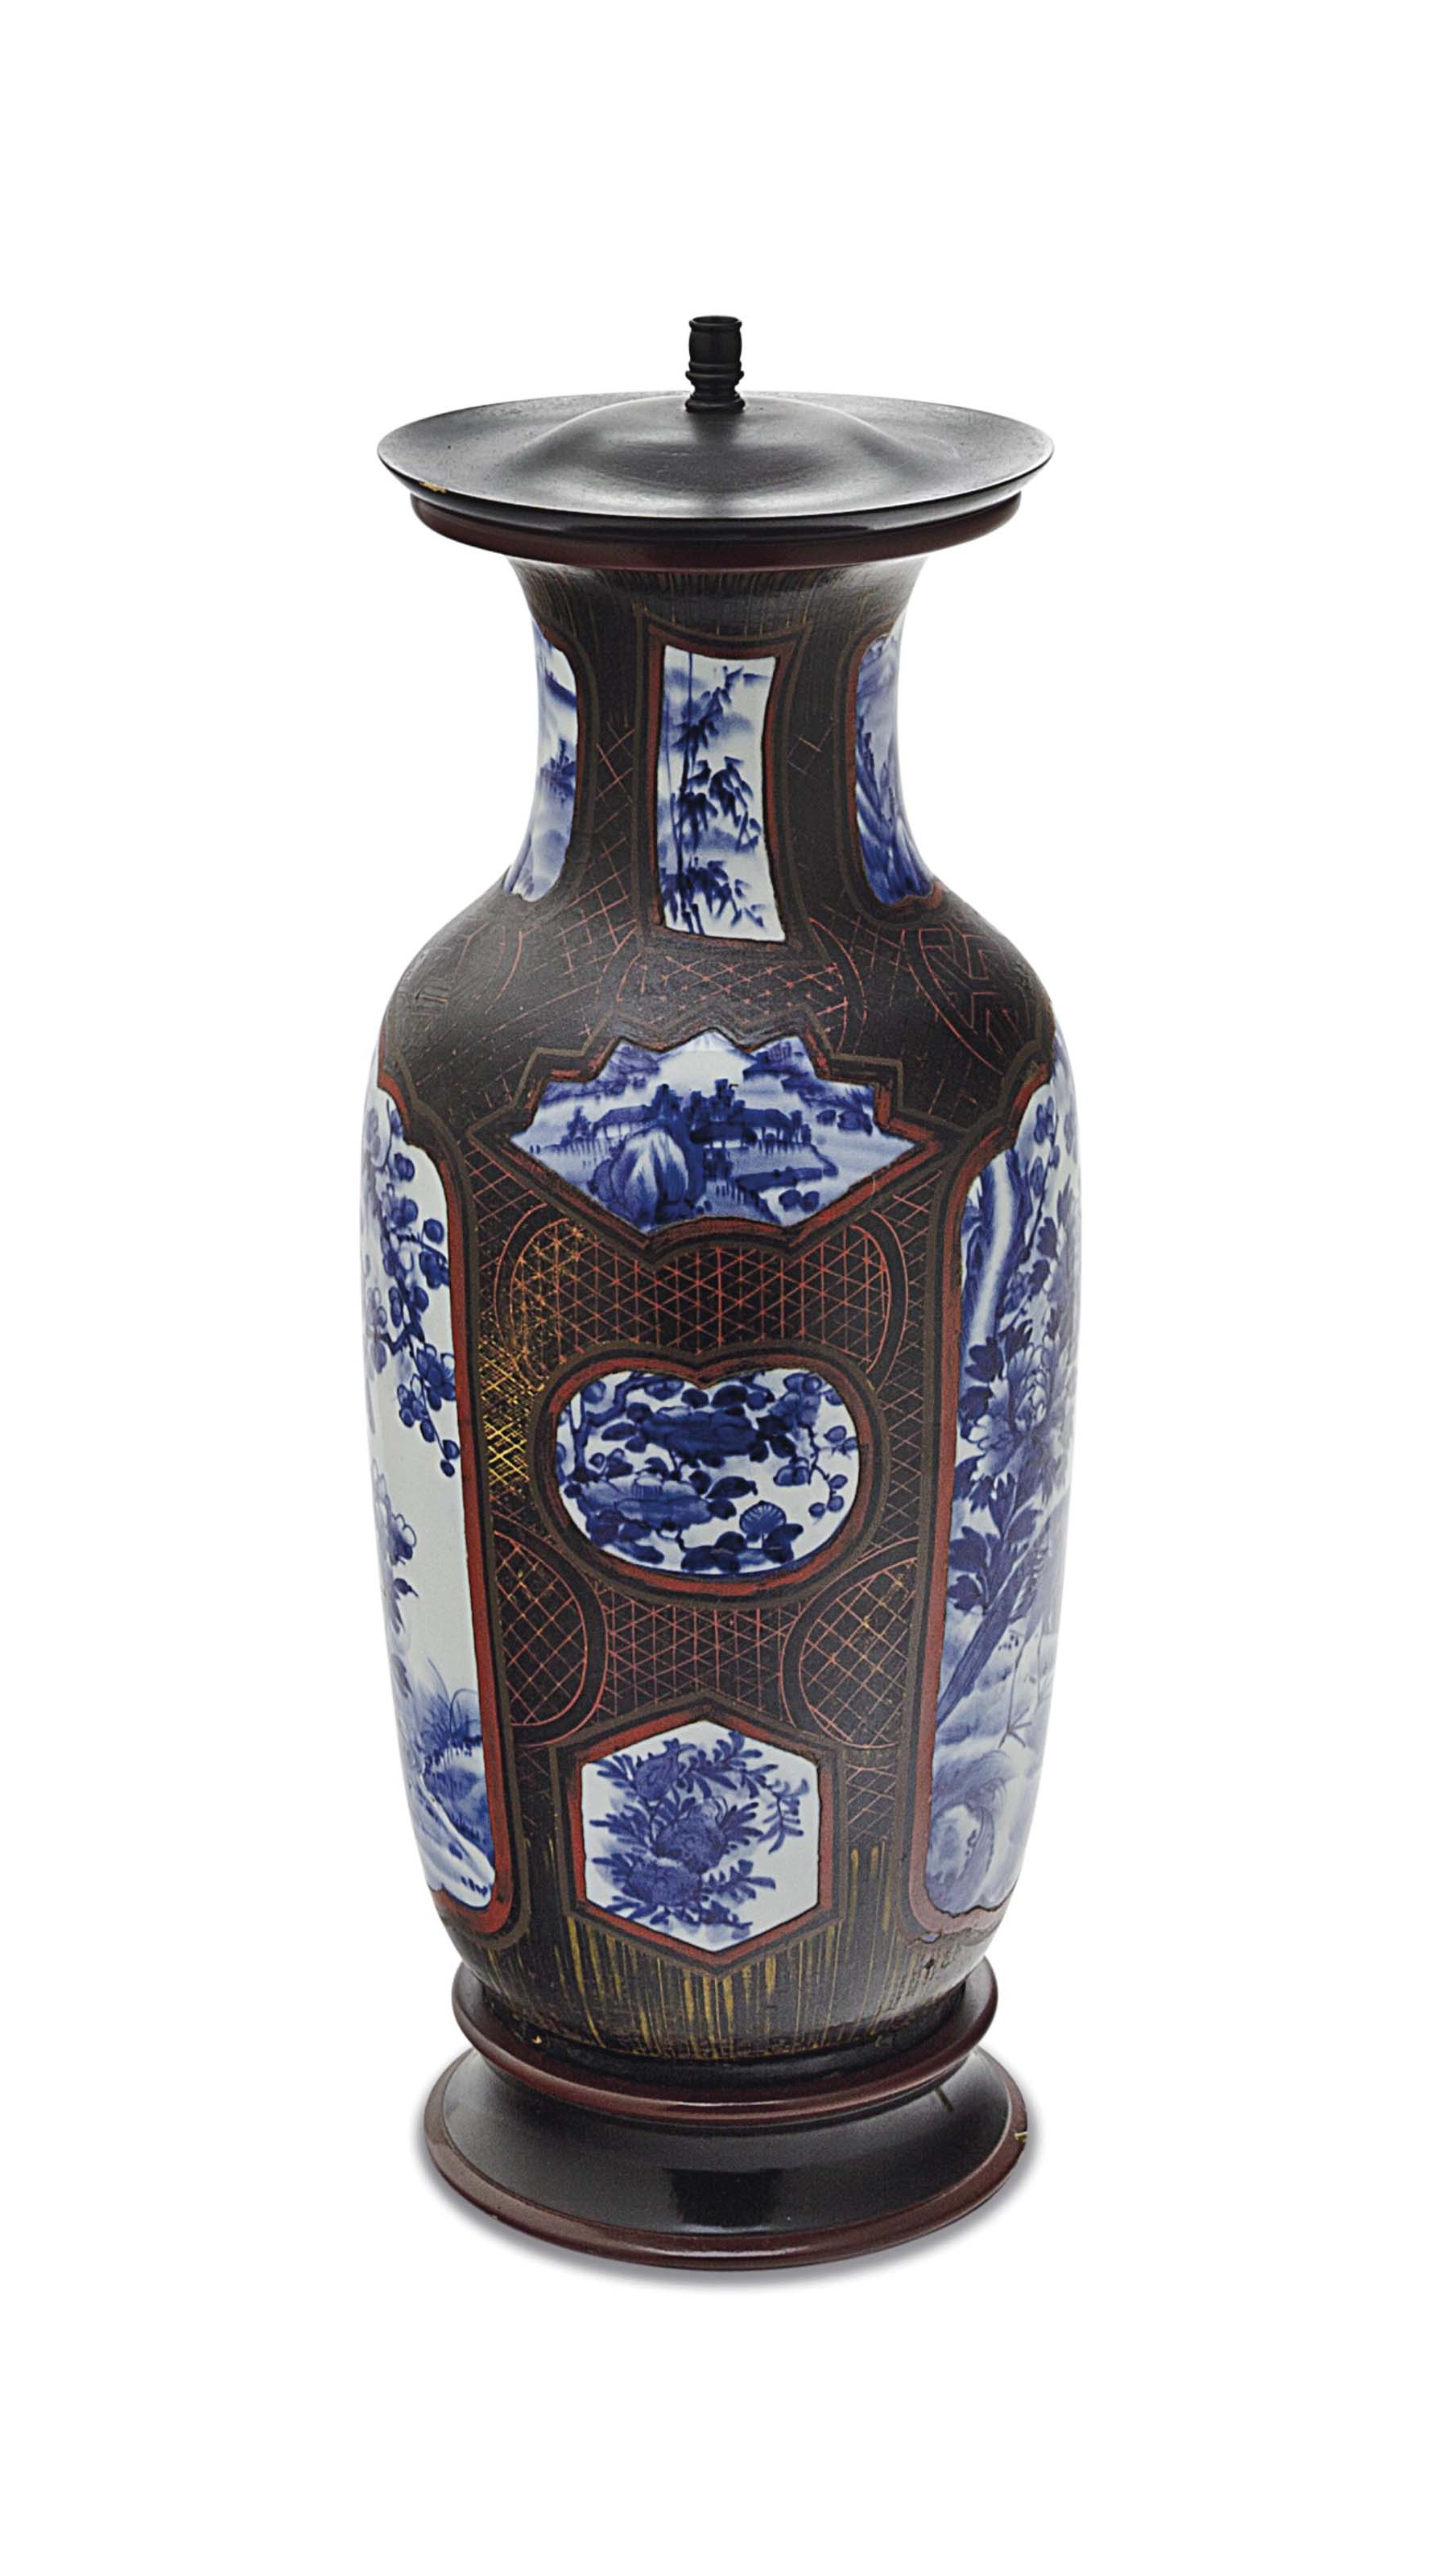 A LATER PAINTED CHINESE BLUE AND WHITE PORCELAIN VASE, MOUNTED AS A LAMP,